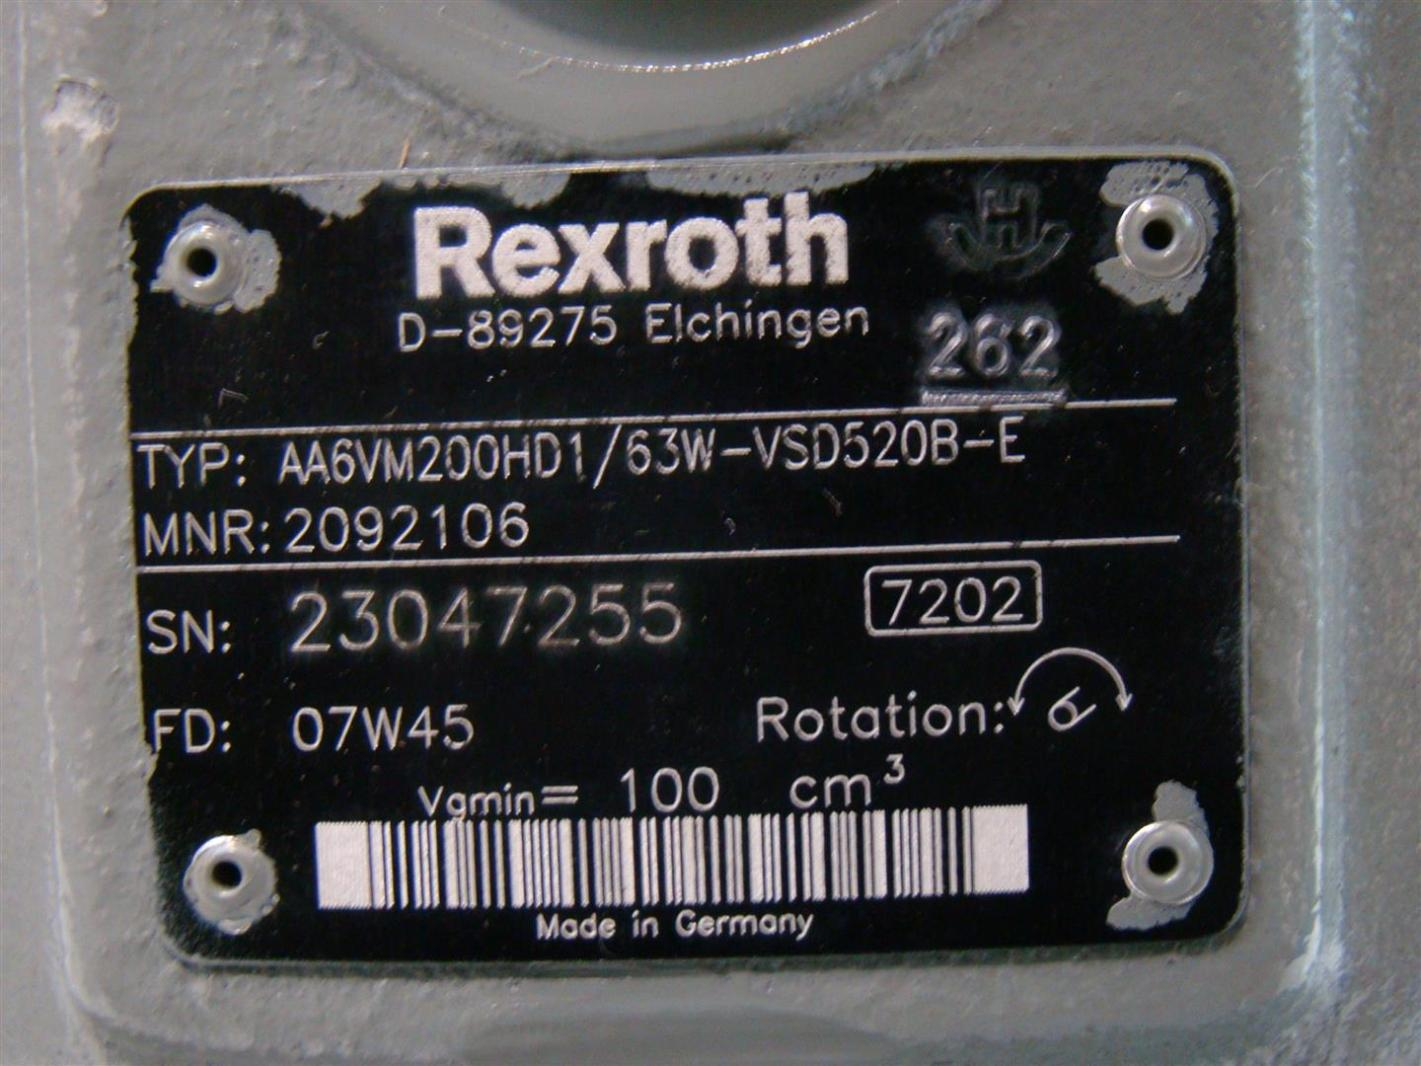 Rexroth Hydraulic Motor Variable Displacment 2092106 AA6VM200HD1/63W-VSD520B-E